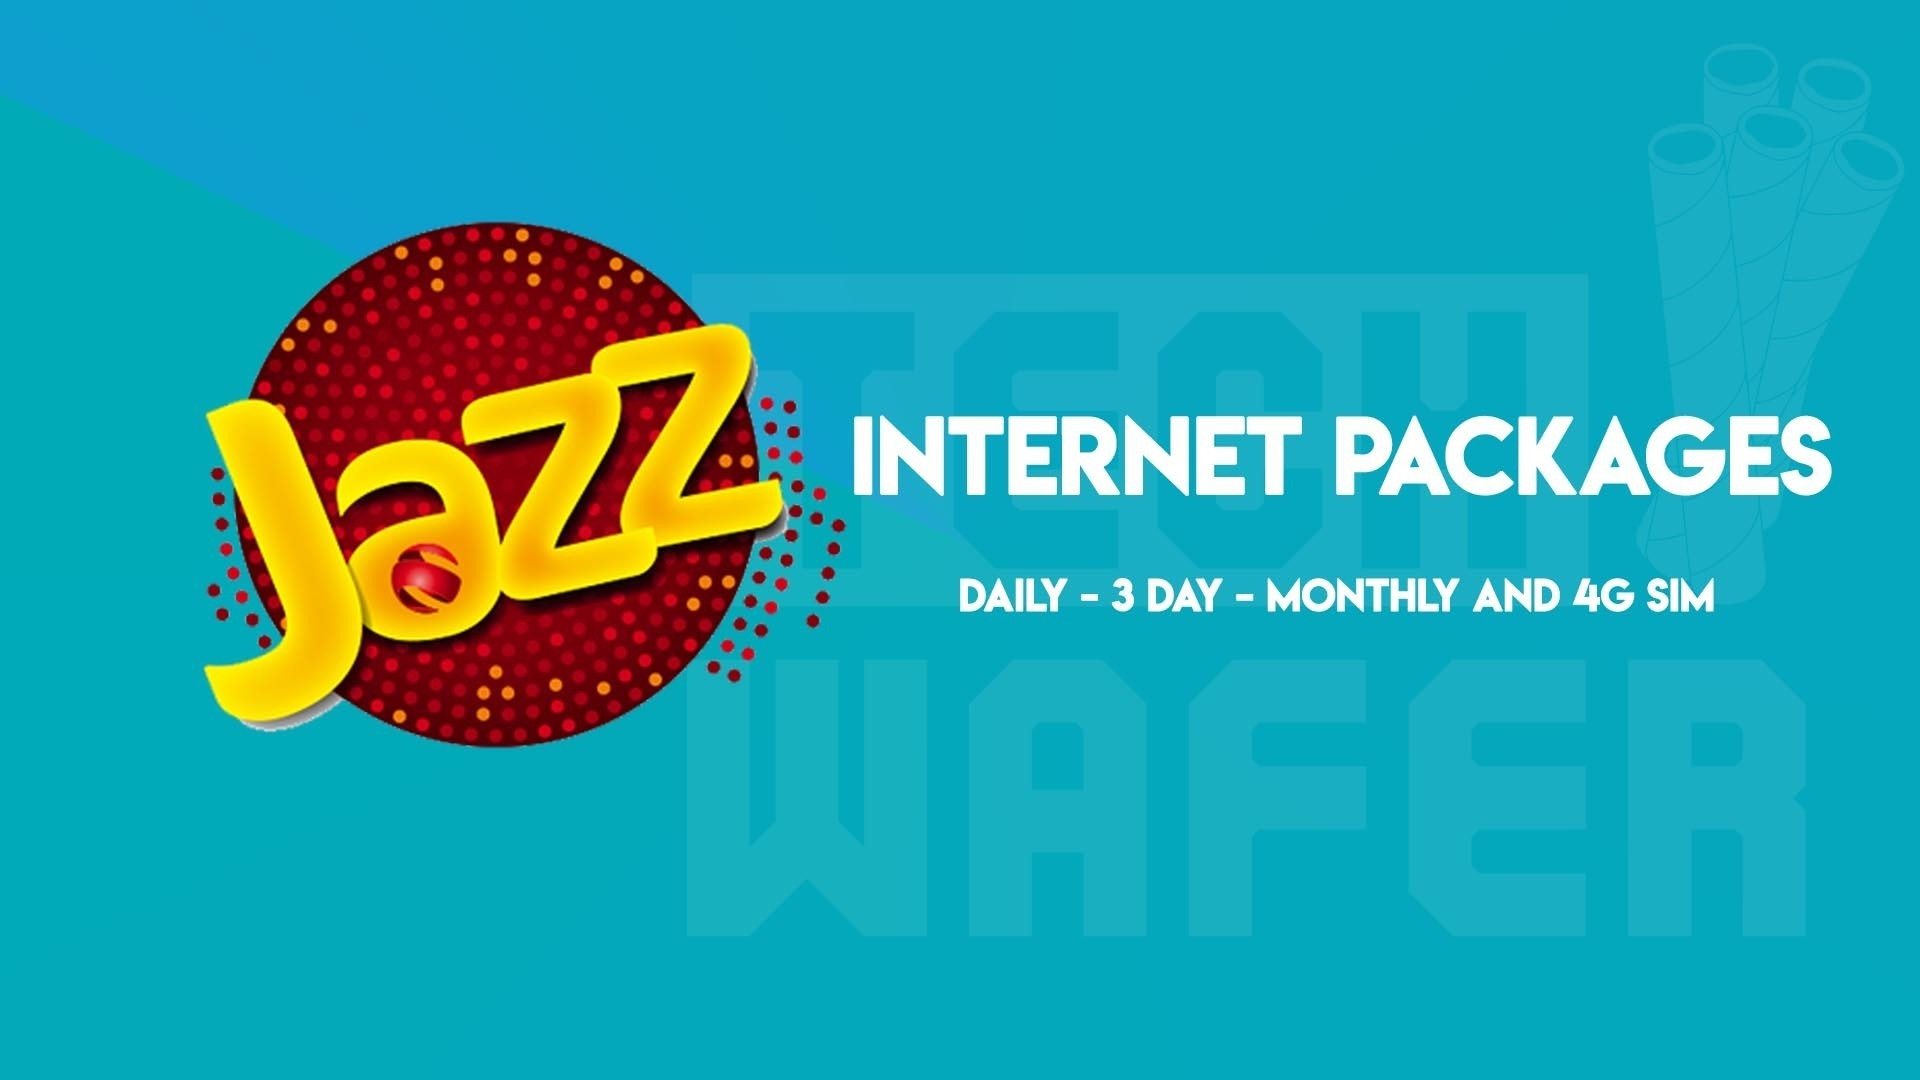 Mobilink Jazz Internet Packages 2019 Daily Weekly And Monthly